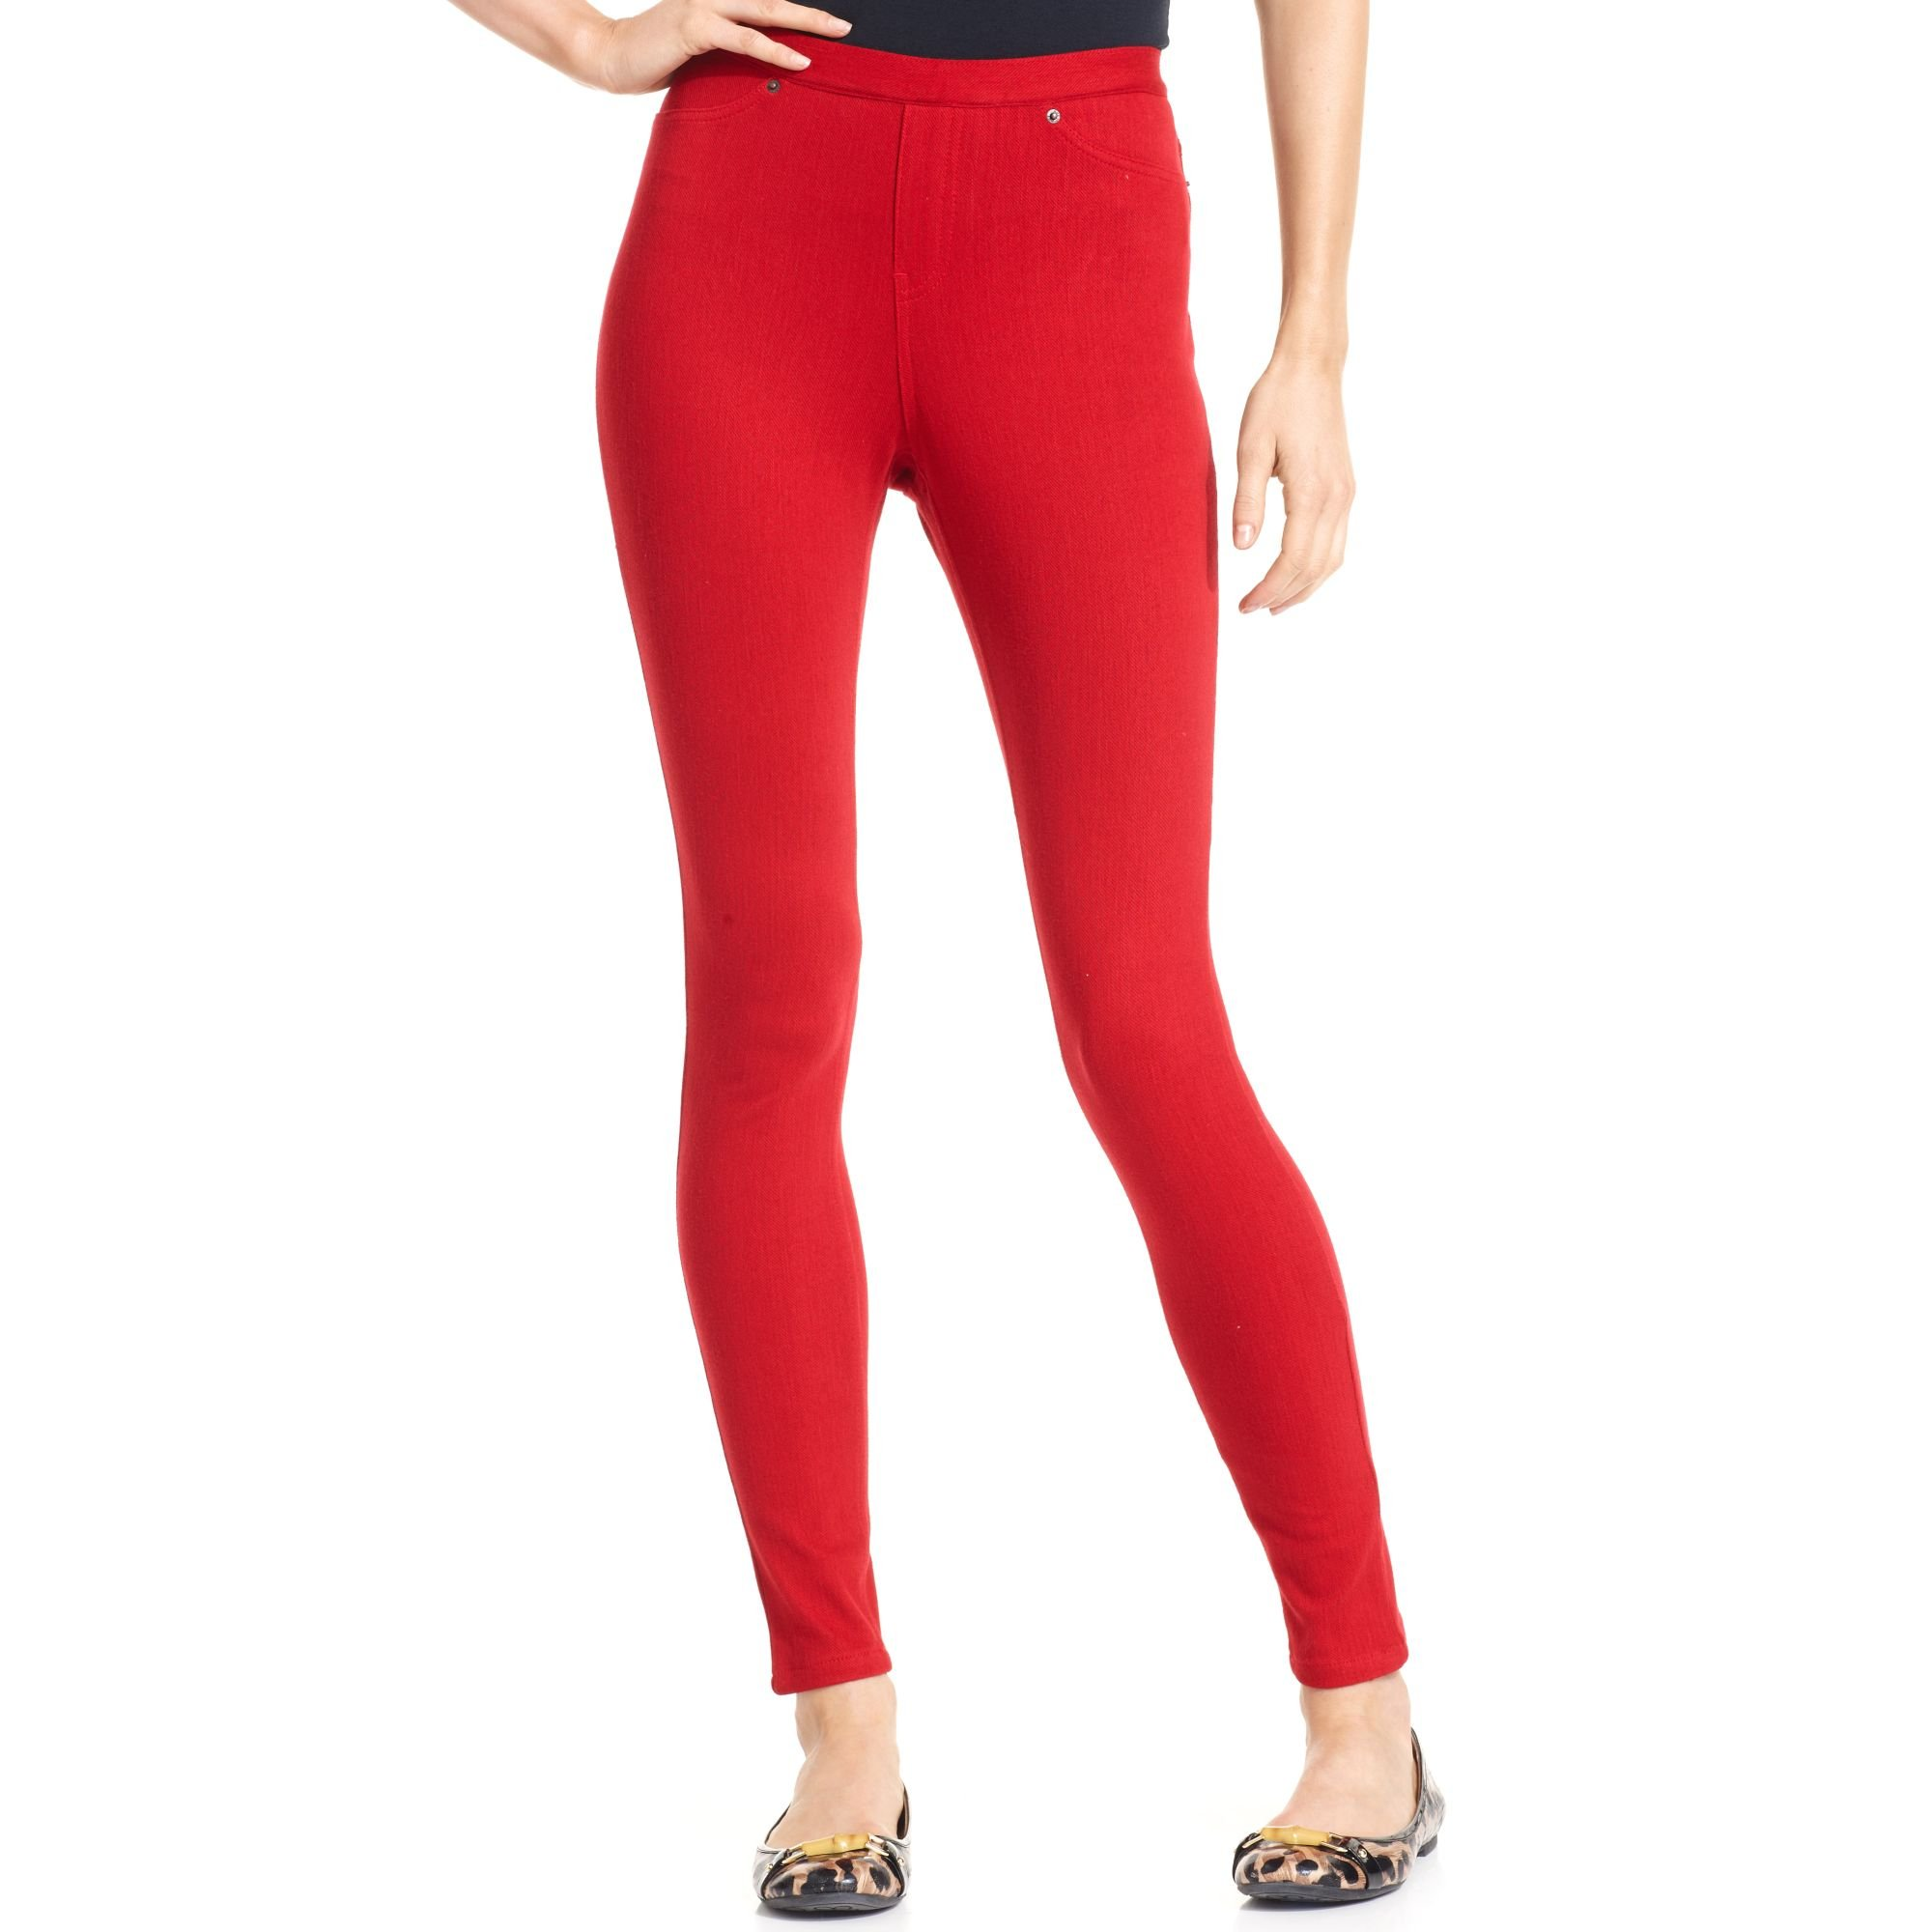 Hue Plus Size Original Jeans Solid Color Leggings Deep Red Small by HUE